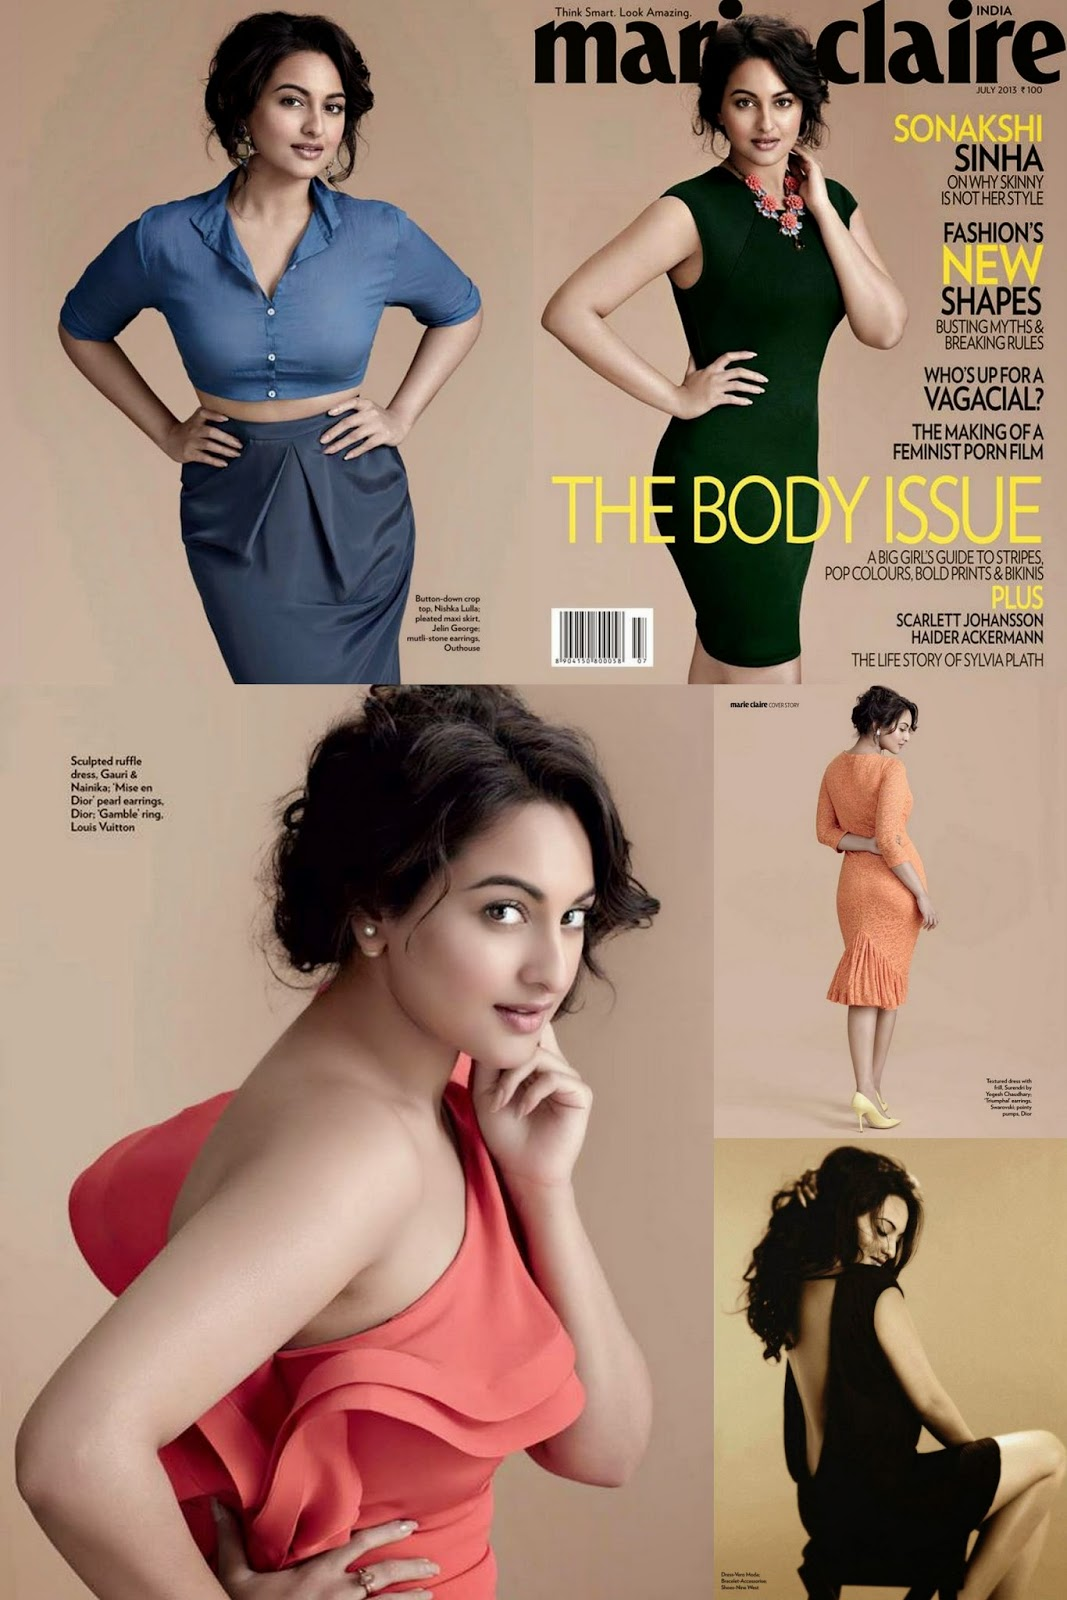 Sonakshi Sinha Hot Photoshoot for Marie Claire Magazine (1707 x 2560)